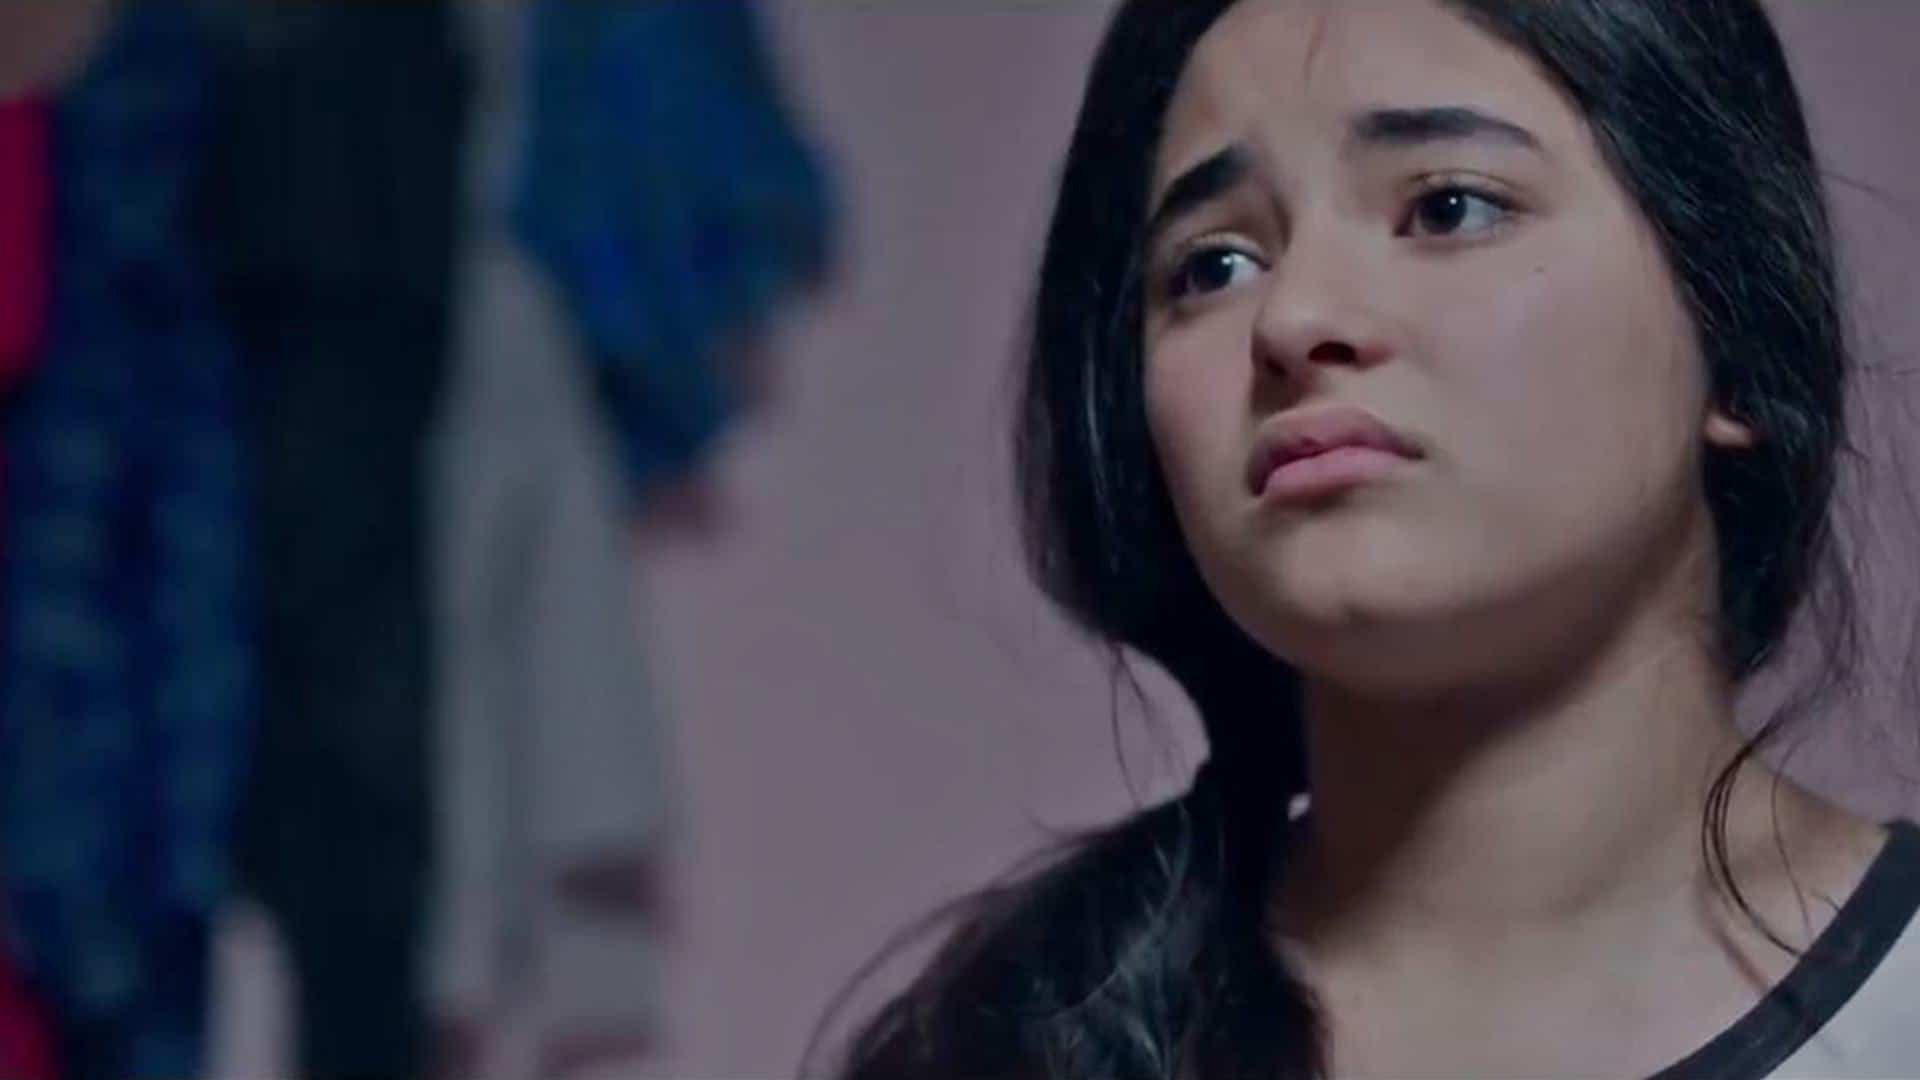 Dear India, Let Zaira Wasim Choose For Herself